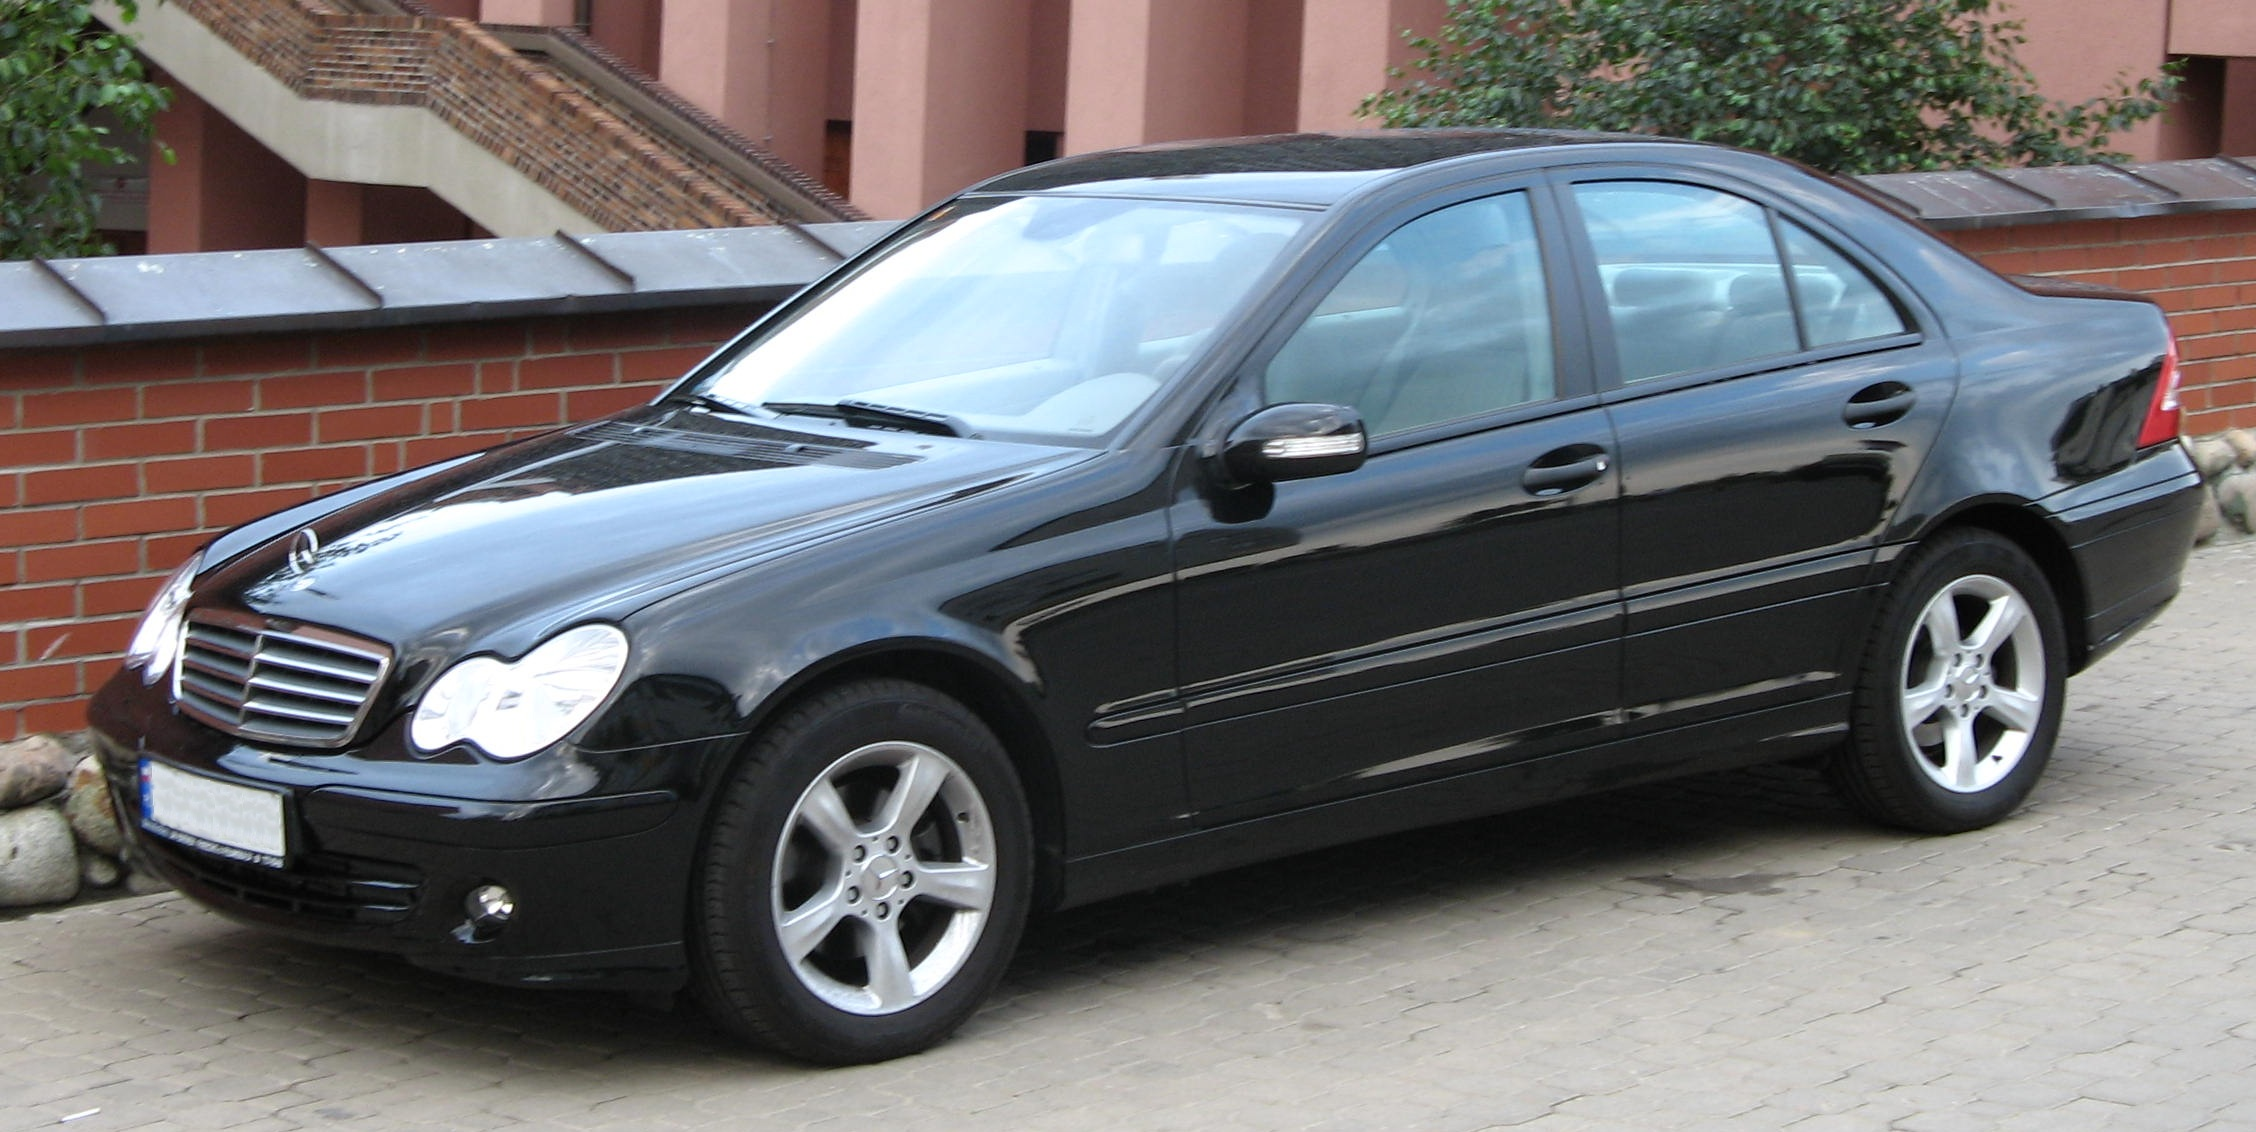 mercedes benz c 180 kompressor technical details history. Black Bedroom Furniture Sets. Home Design Ideas